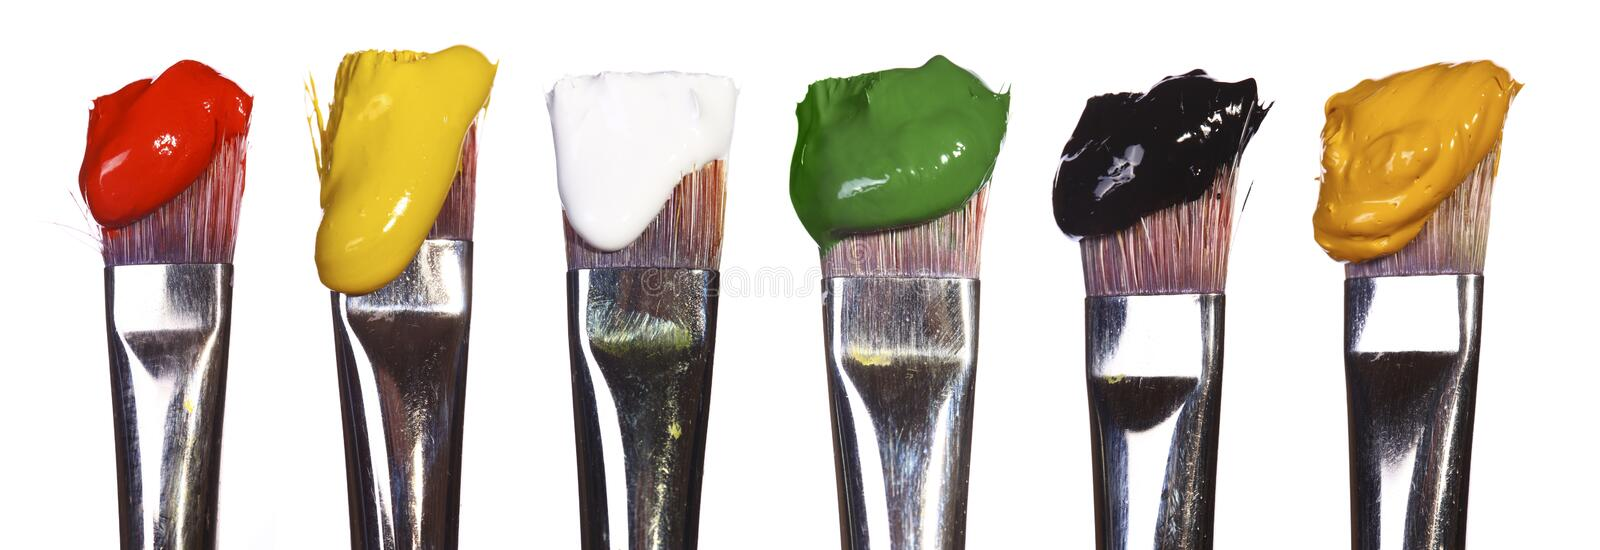 Brushes with paint stock photo